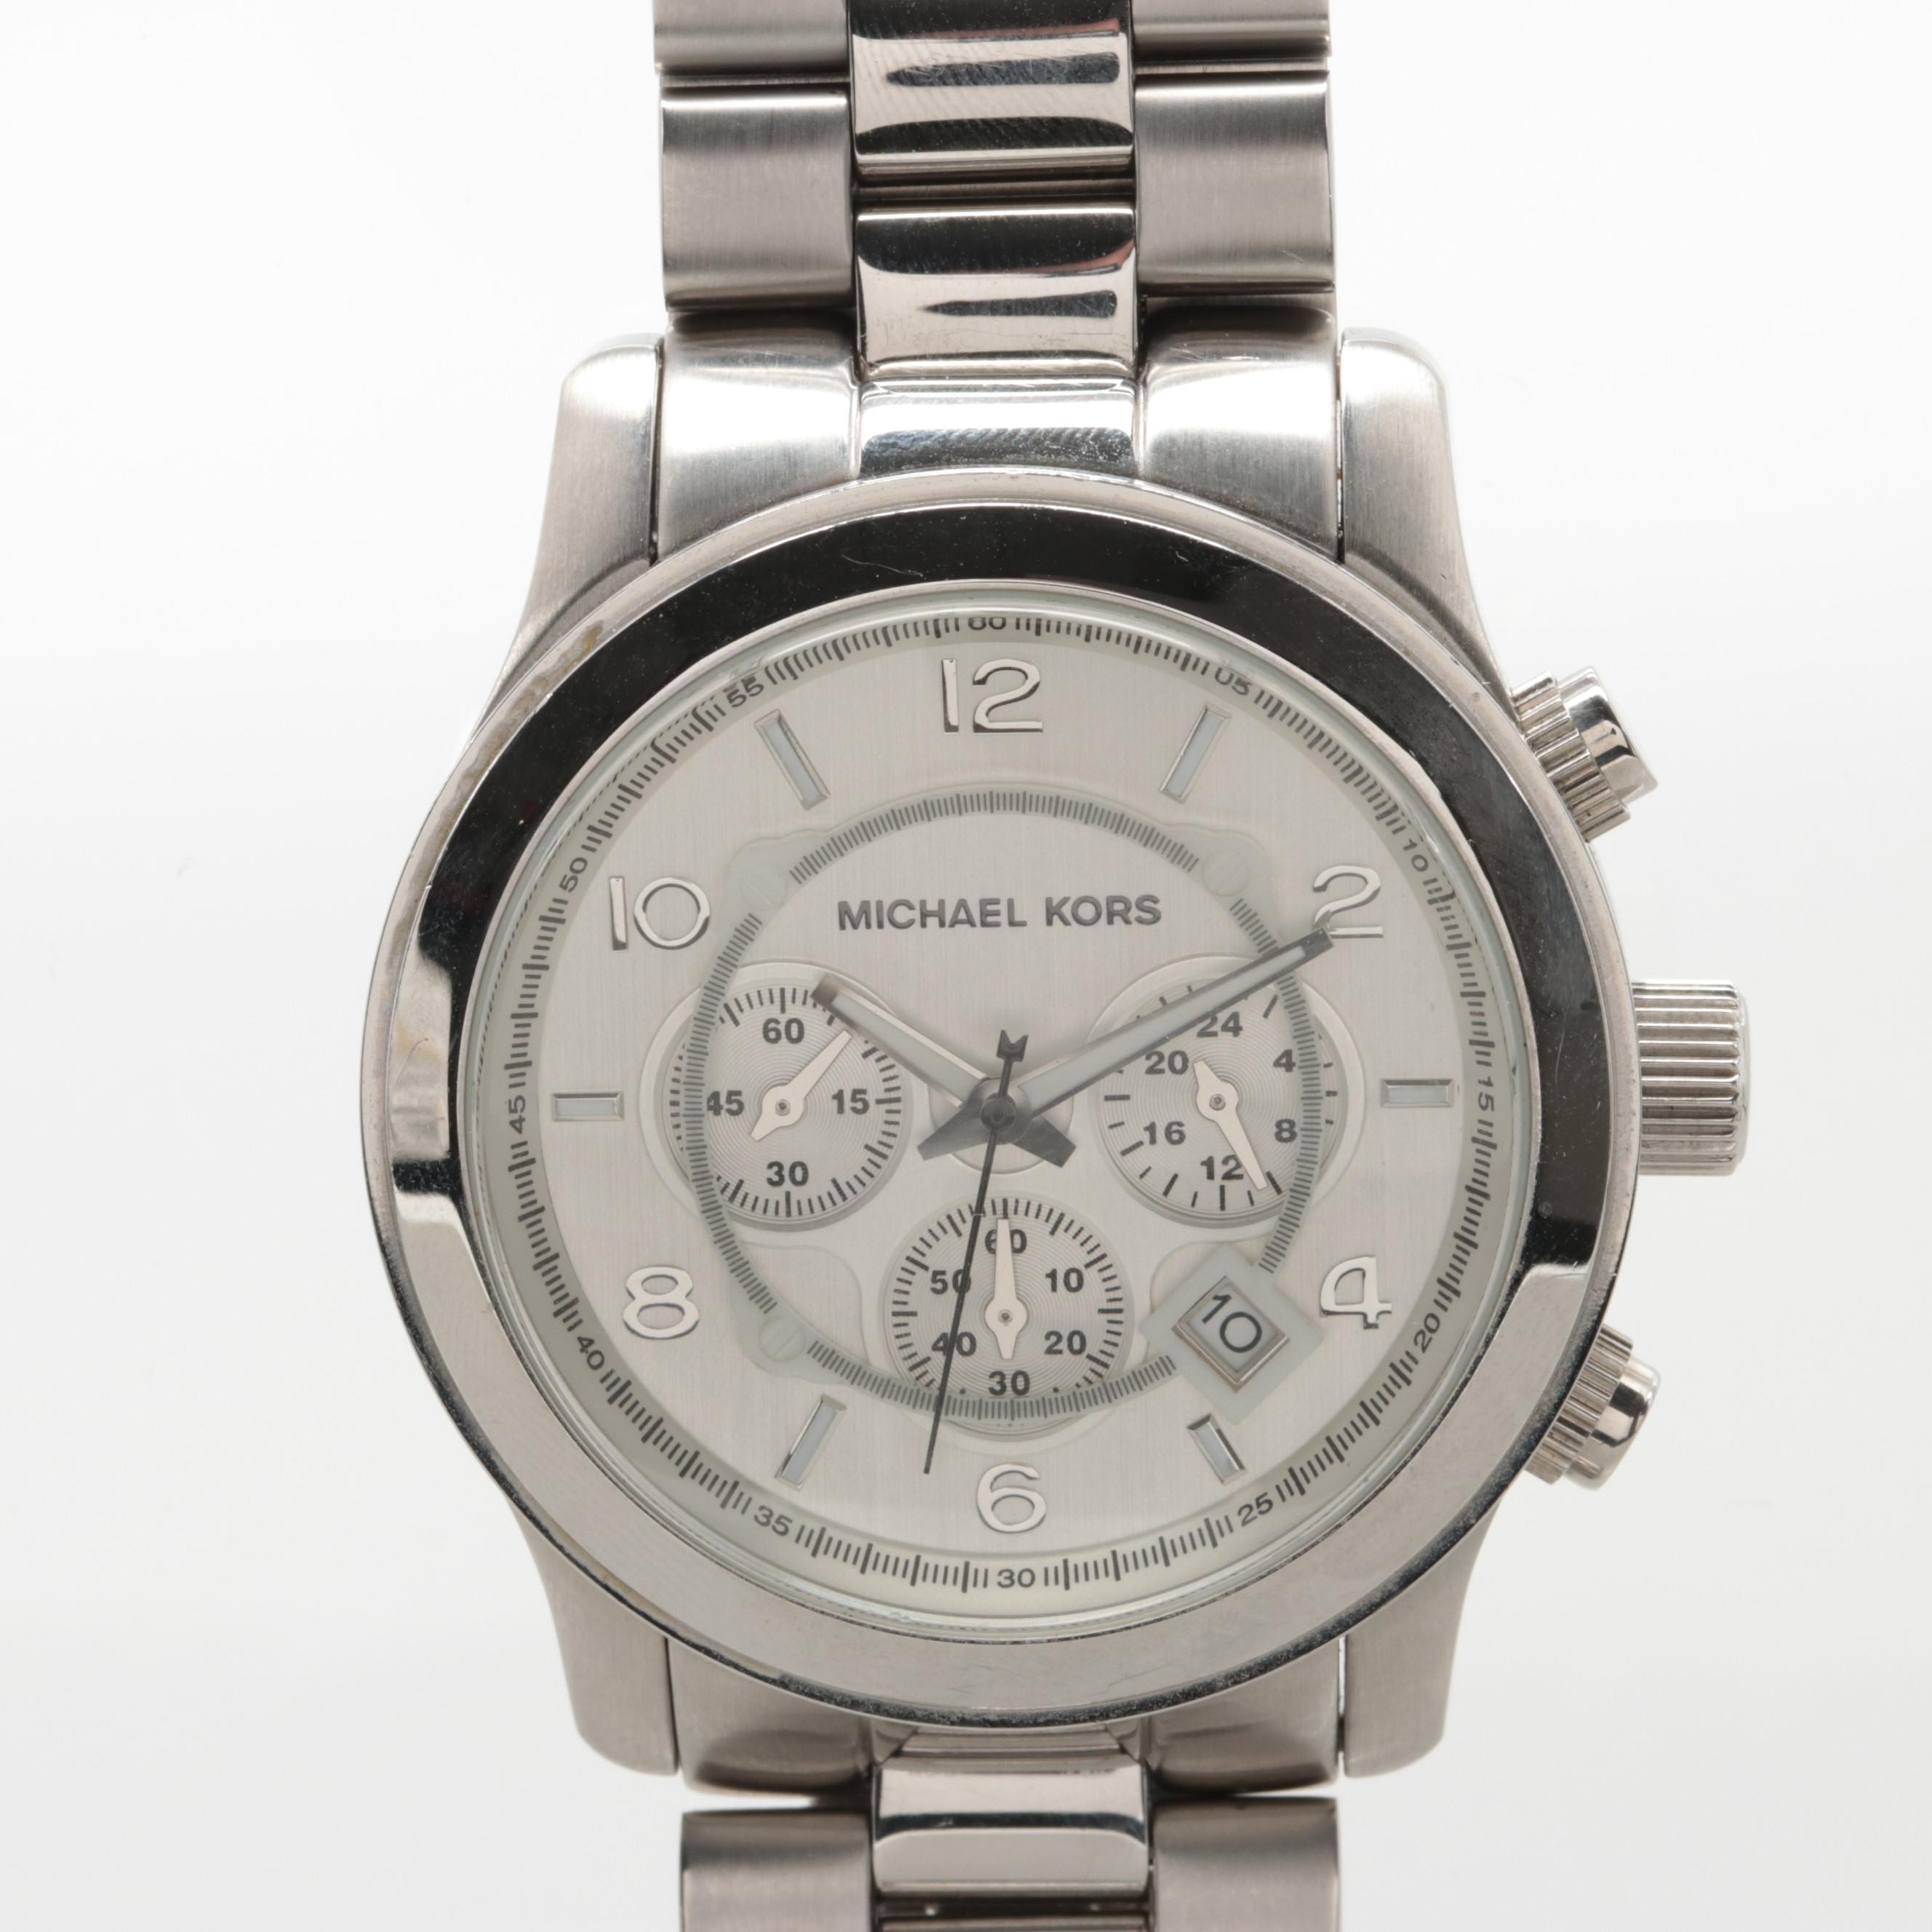 Michael Kors Stainless Steel Model MK-8086 Chronograph Wristwatch